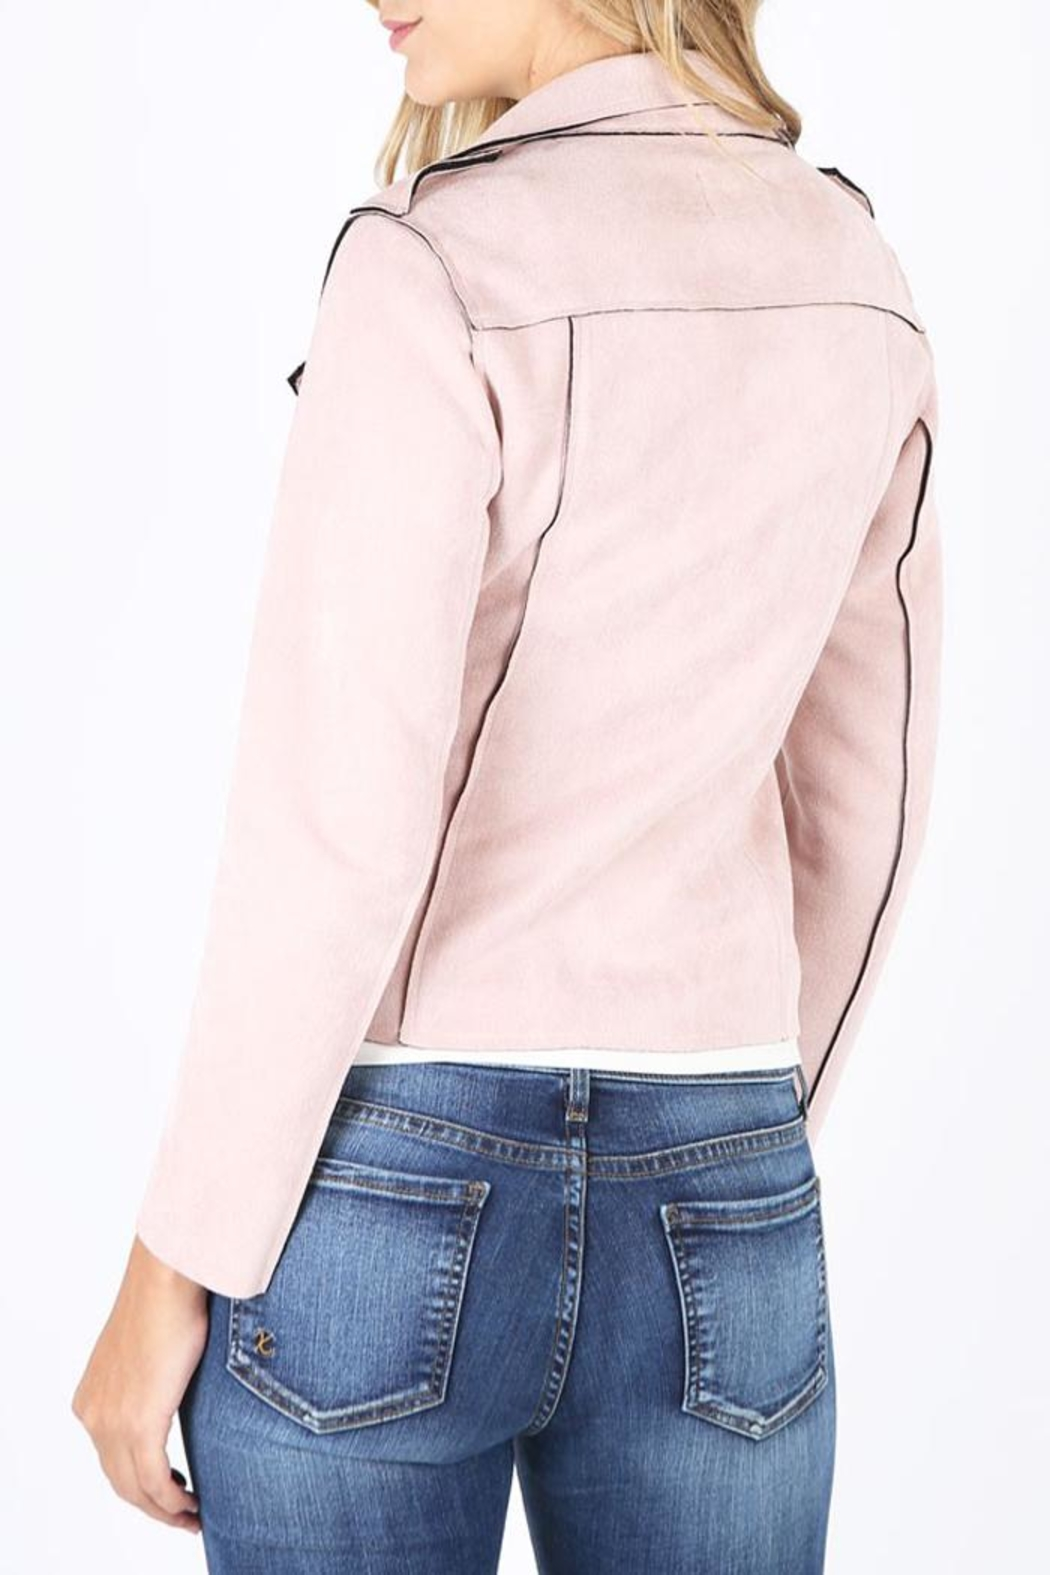 Kut from the Kloth Pink Bloom Jacket - Front Full Image